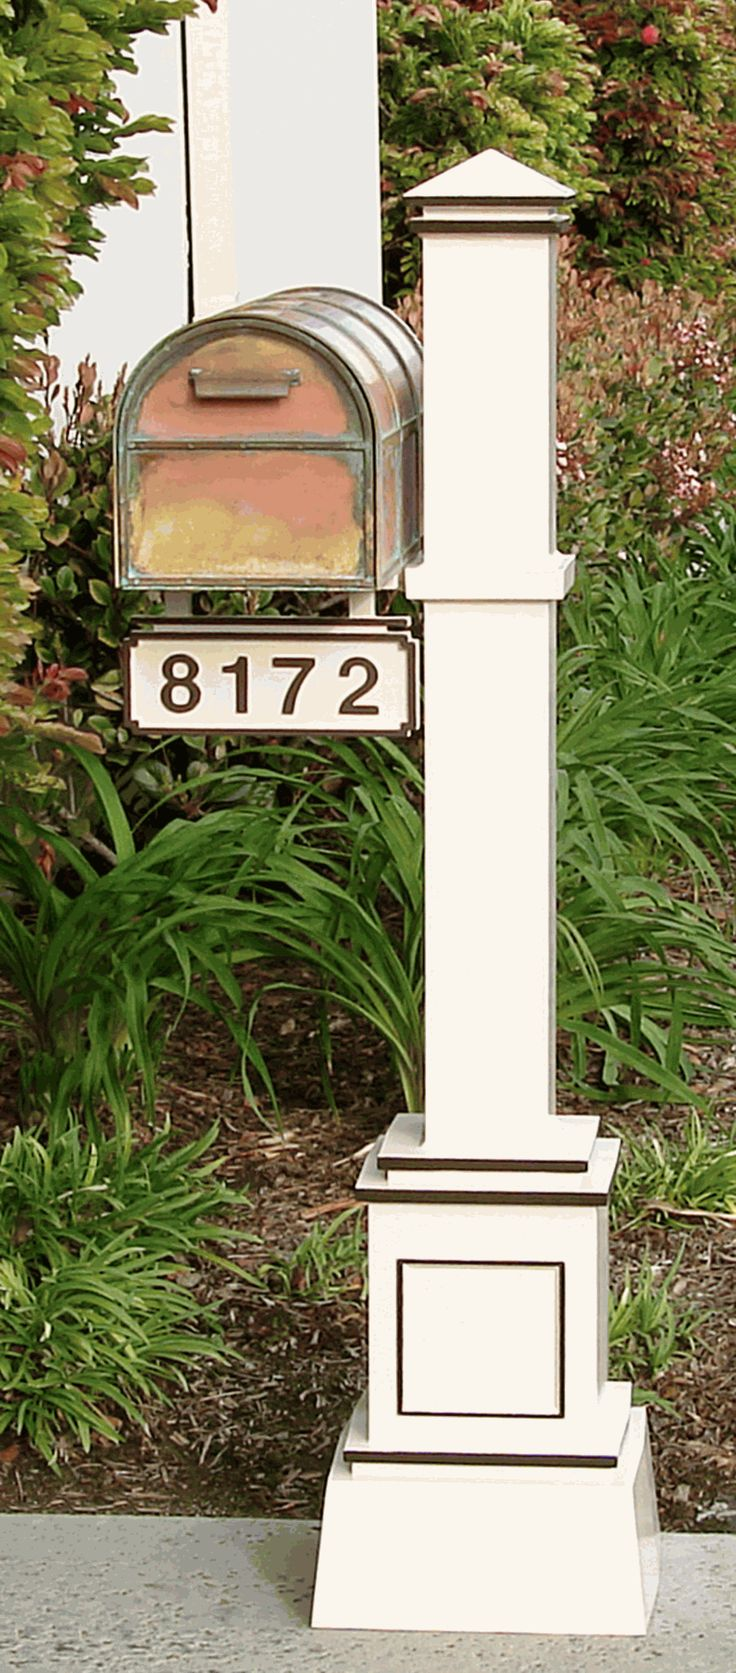 The Craftsman Aluminum Mailbox Pole with Address Sign by Streetscape is specially designed for use with the Westchester Post Mount Mailbox. Description from budgetcommercialmailboxes.com. I searched for this on bing.com/images